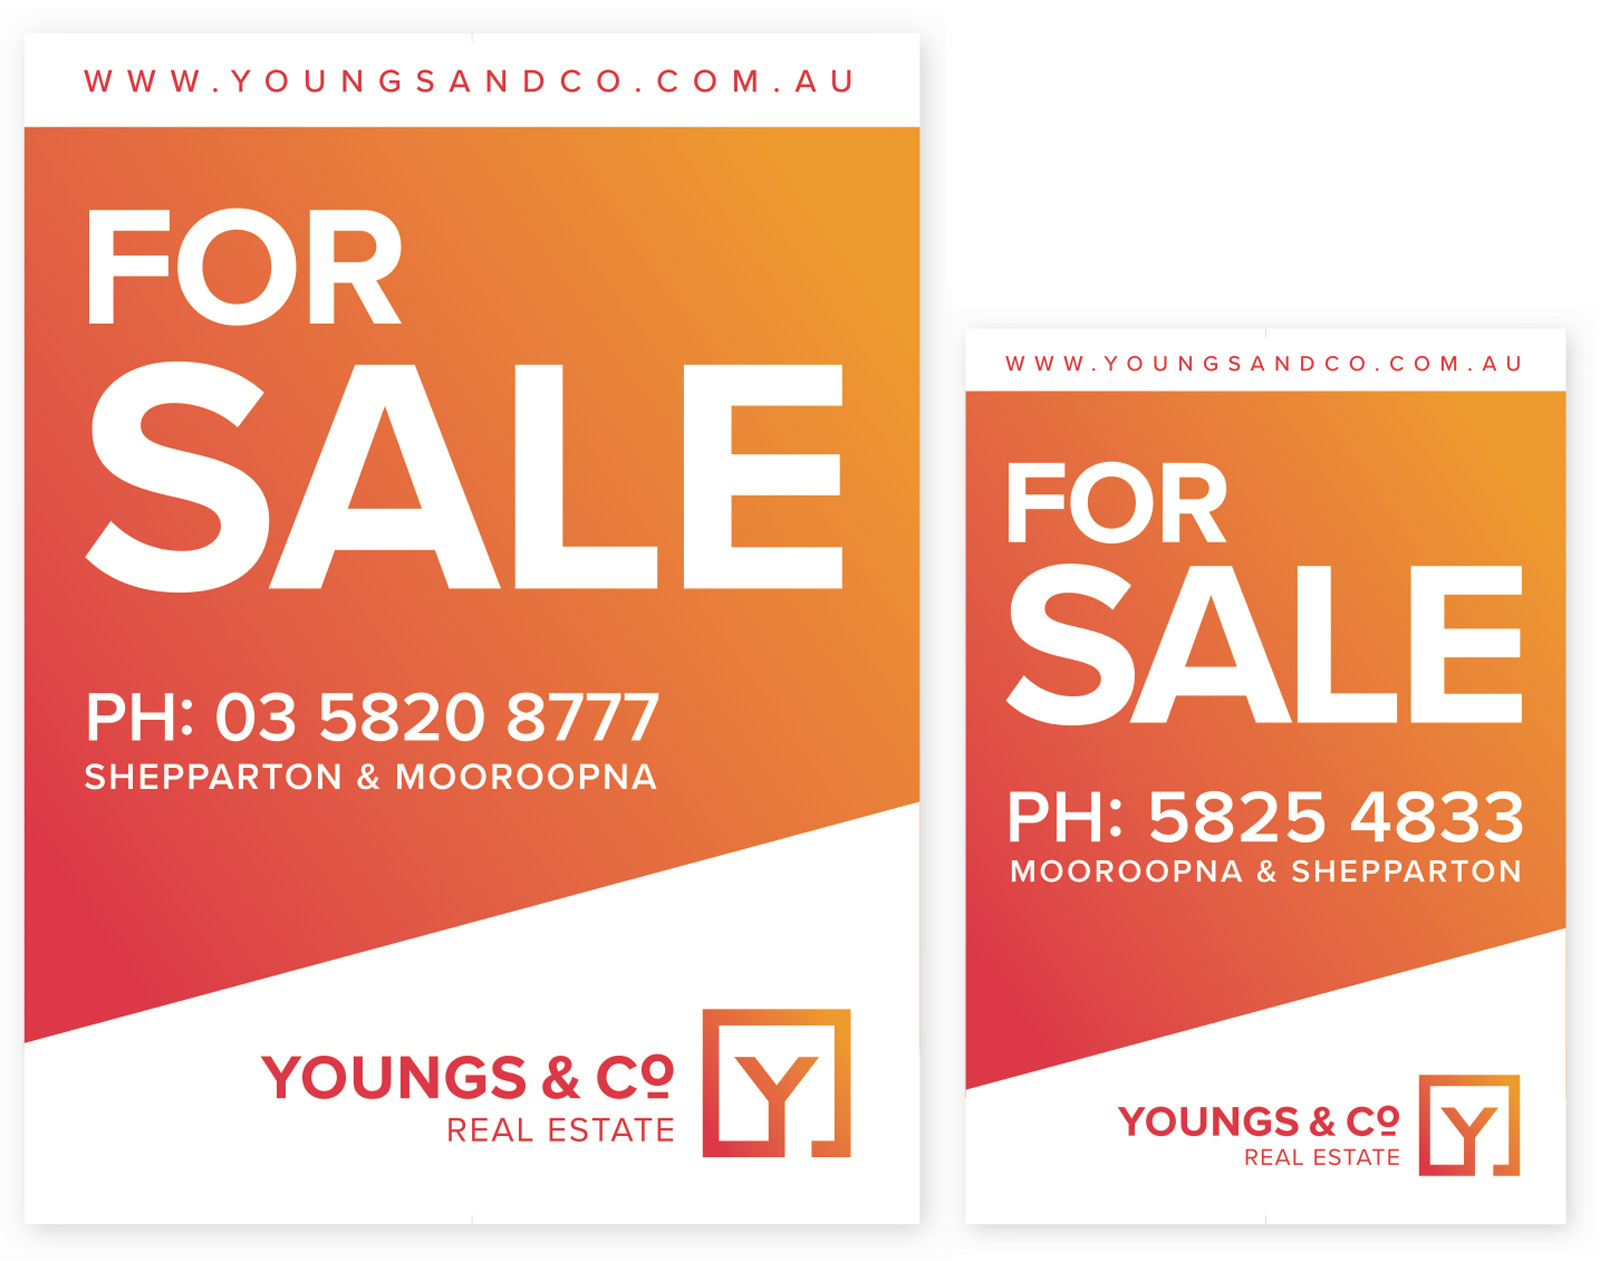 Youngs-&-Co-SIGNS.jpg